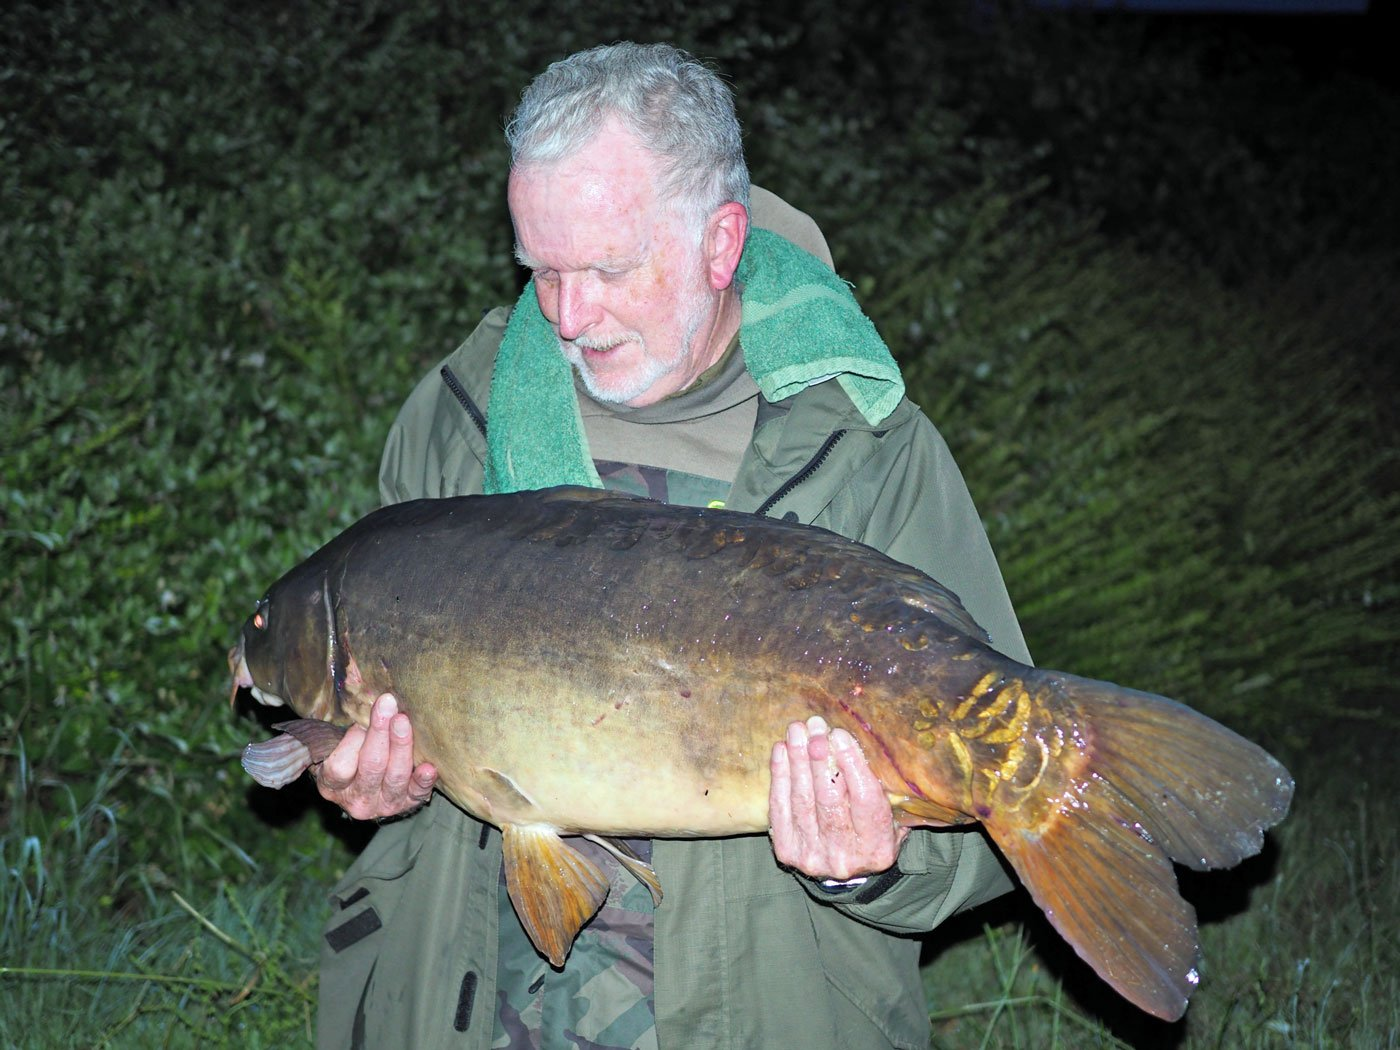 richard with a 37 pound river carp in france